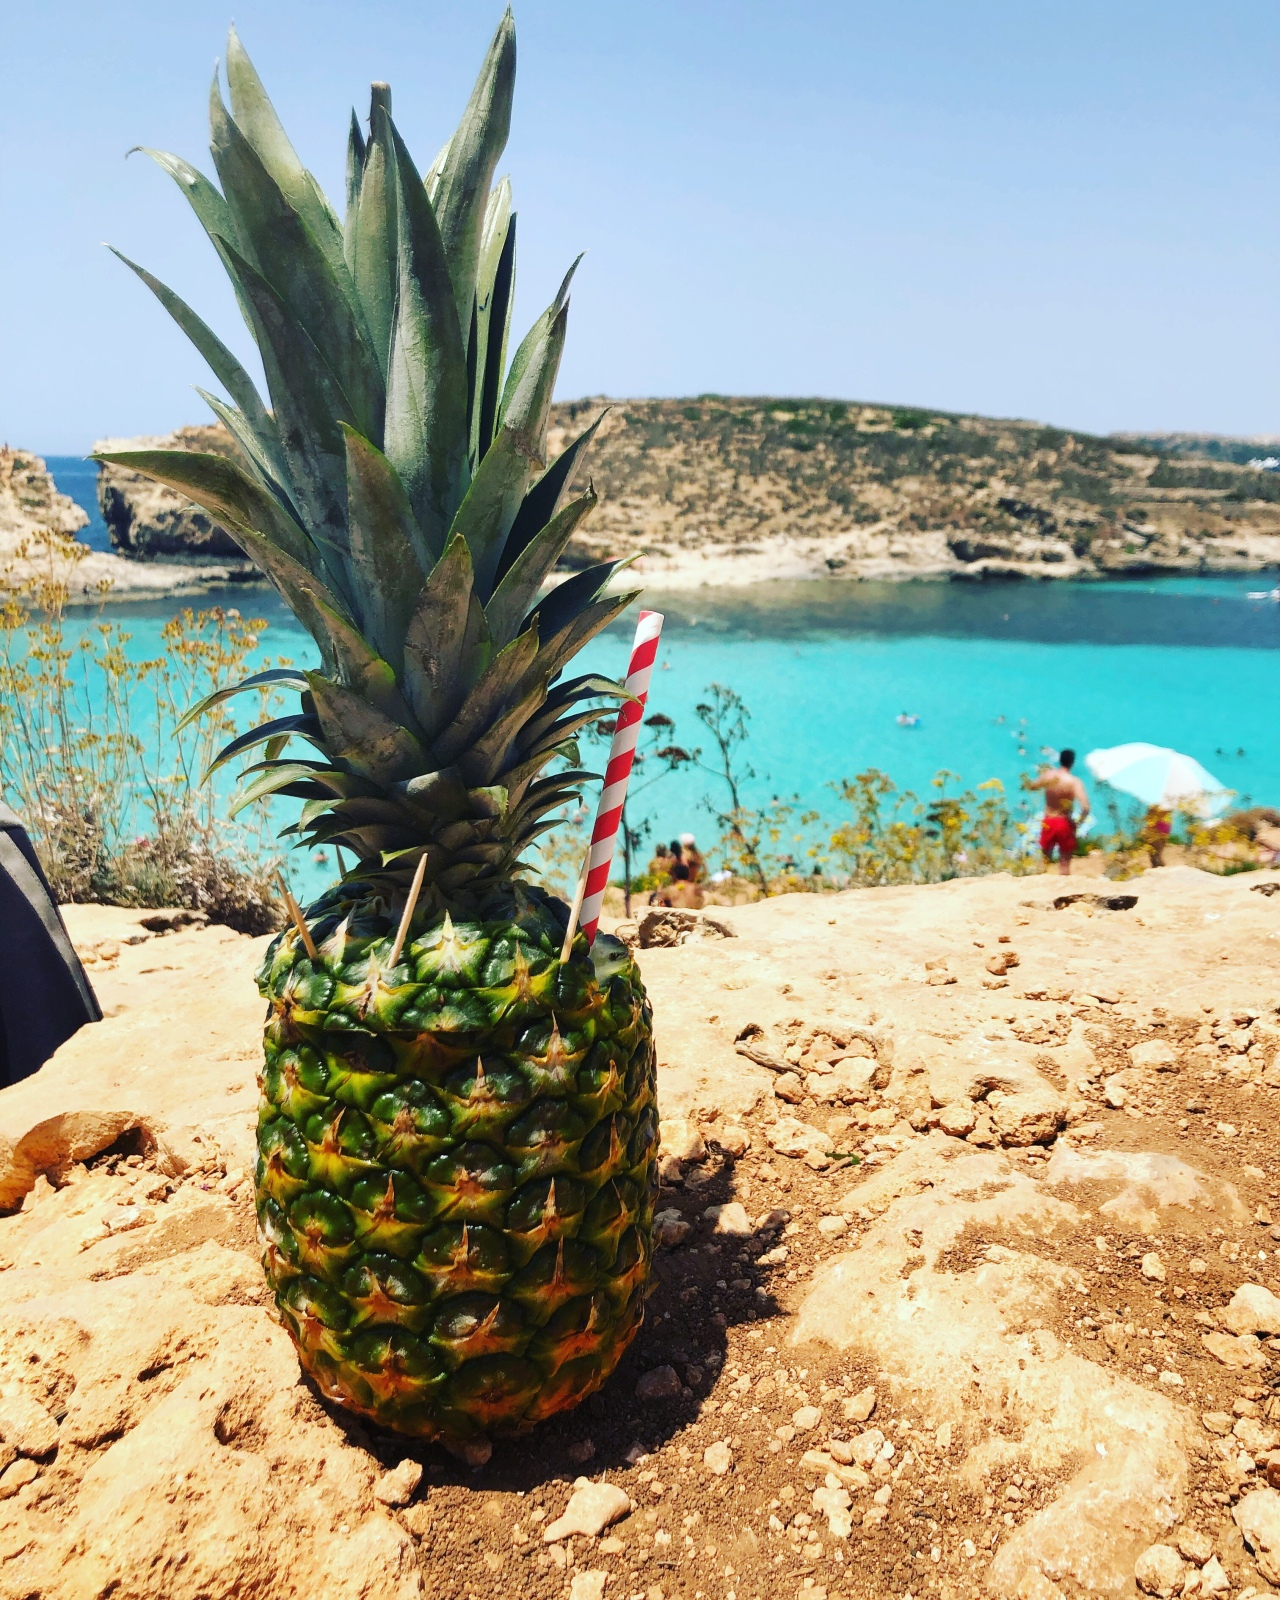 Backpacking in Malta